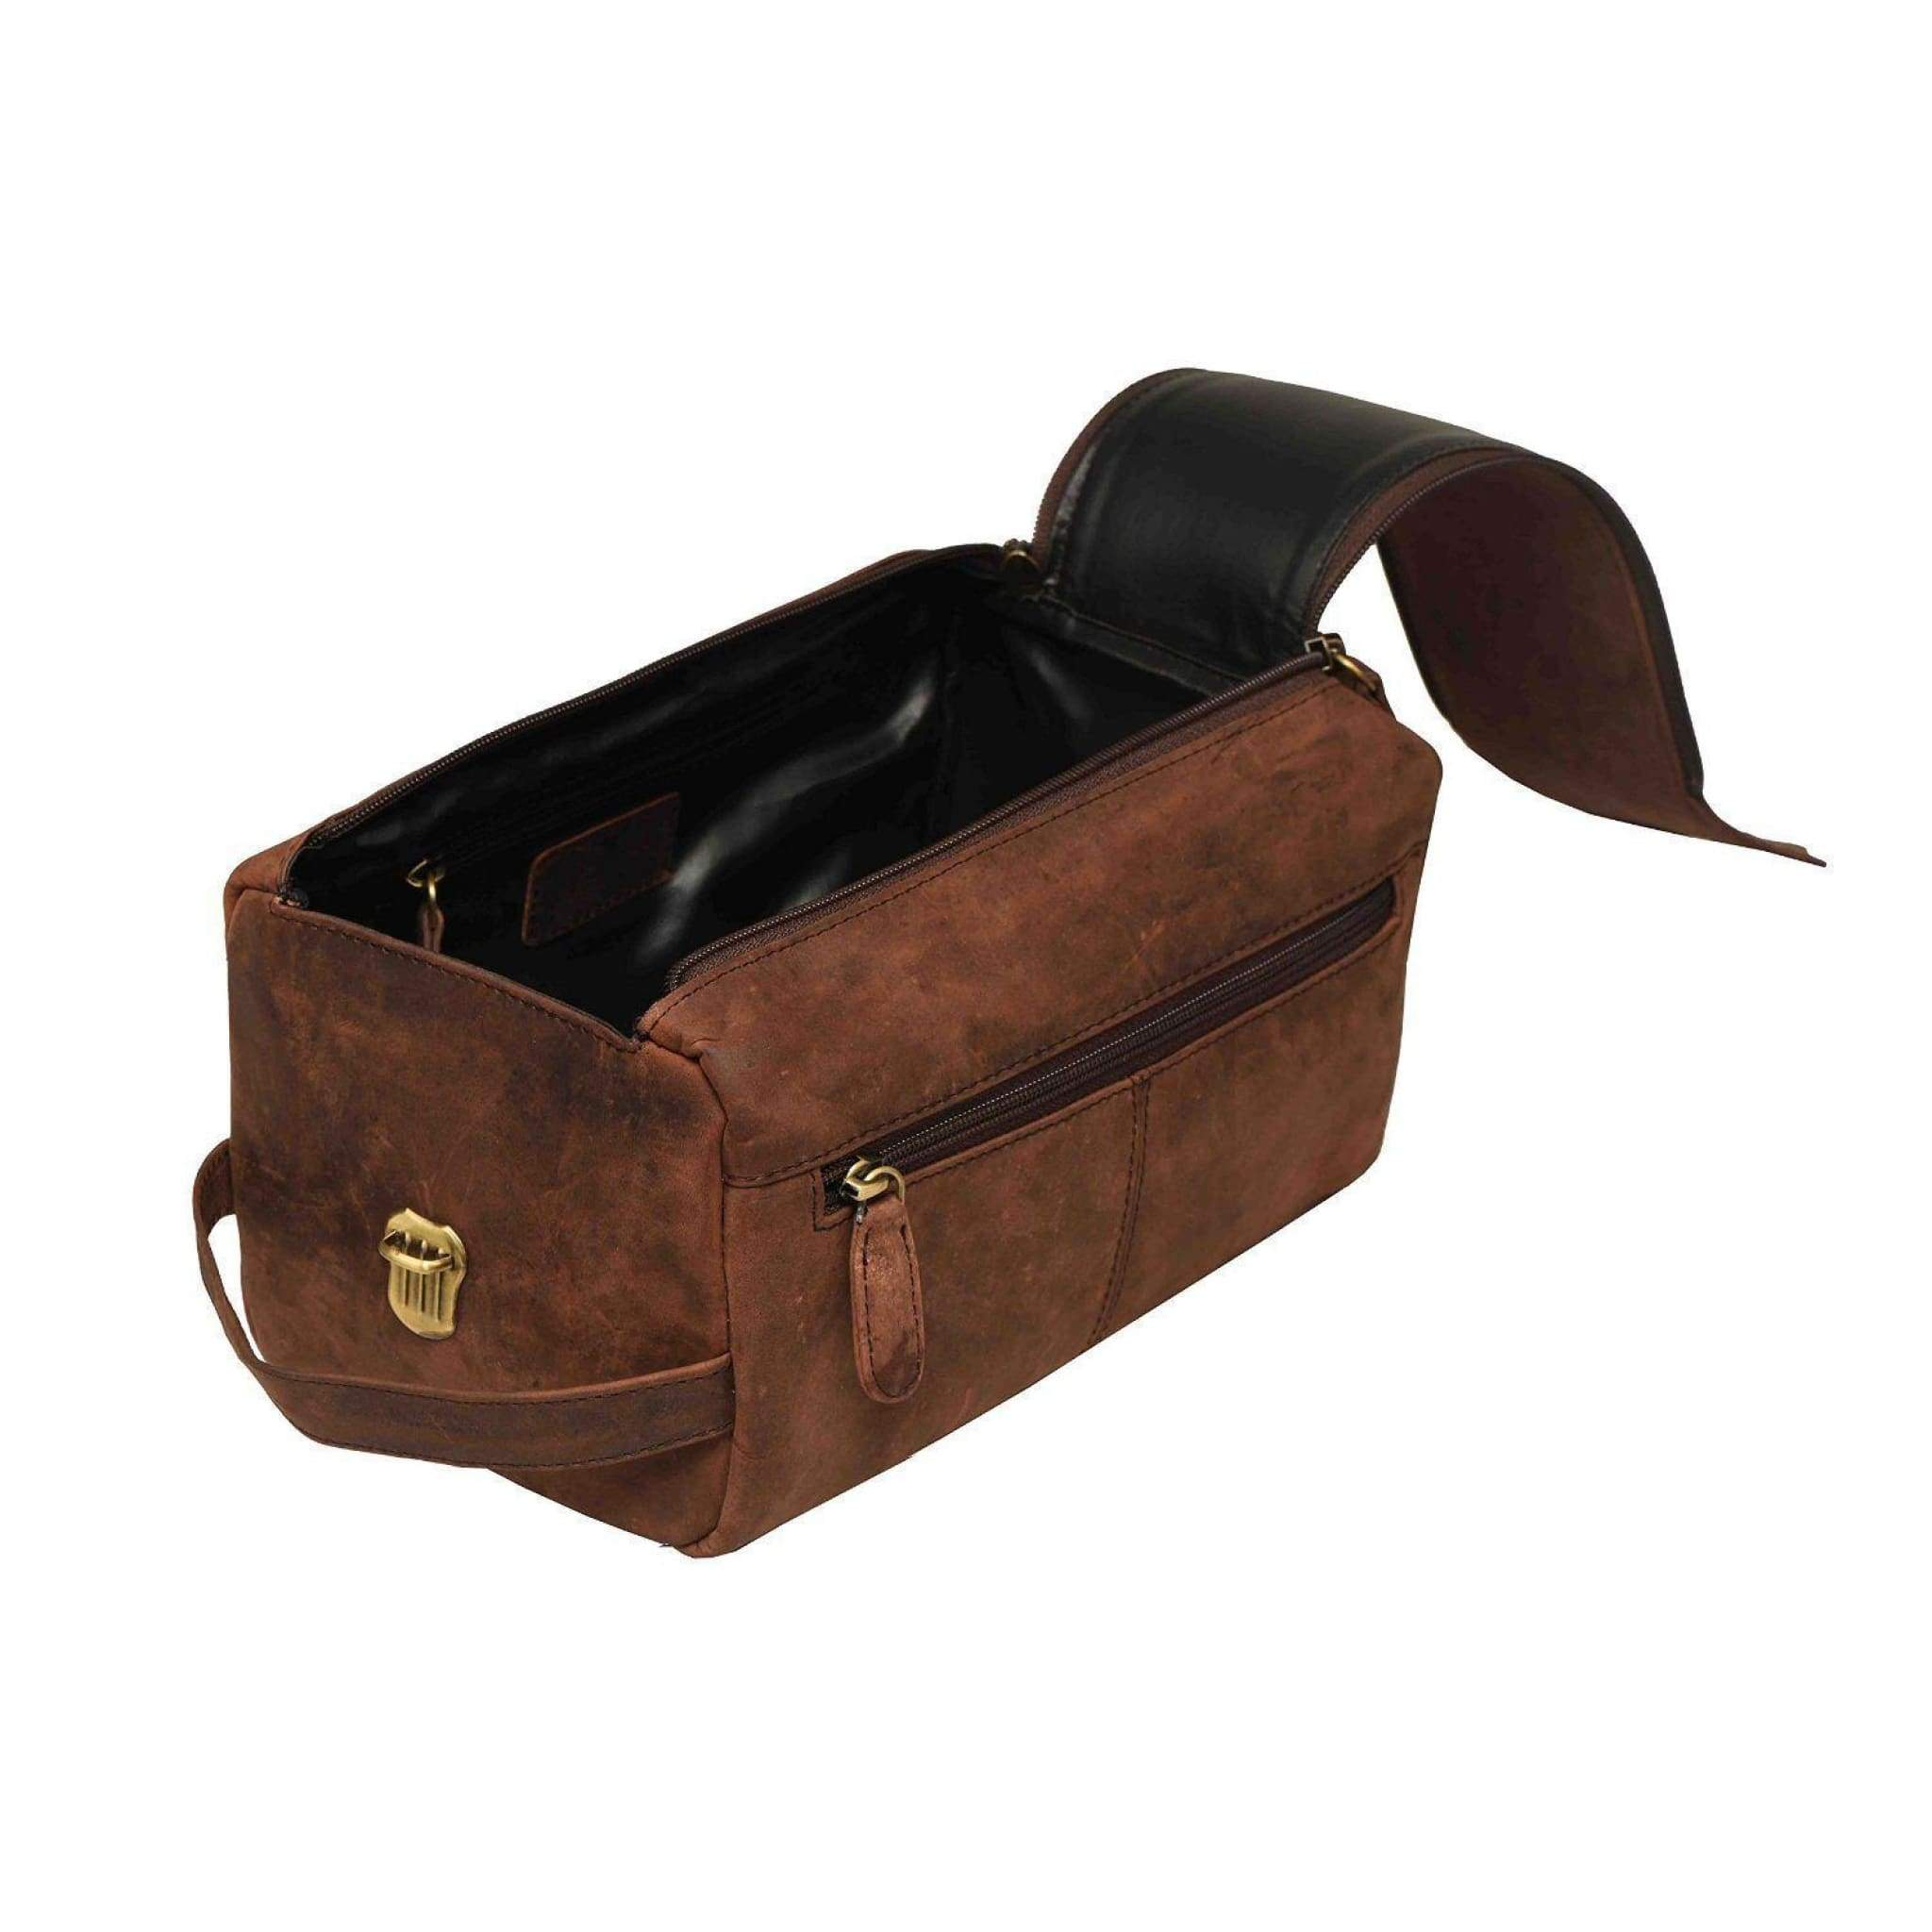 Rusthide | Vintage Handmade Leather Toiletry Bag Toiletry Travel Bag Travel Organizer Case / Free Shipping: Rusthide.com